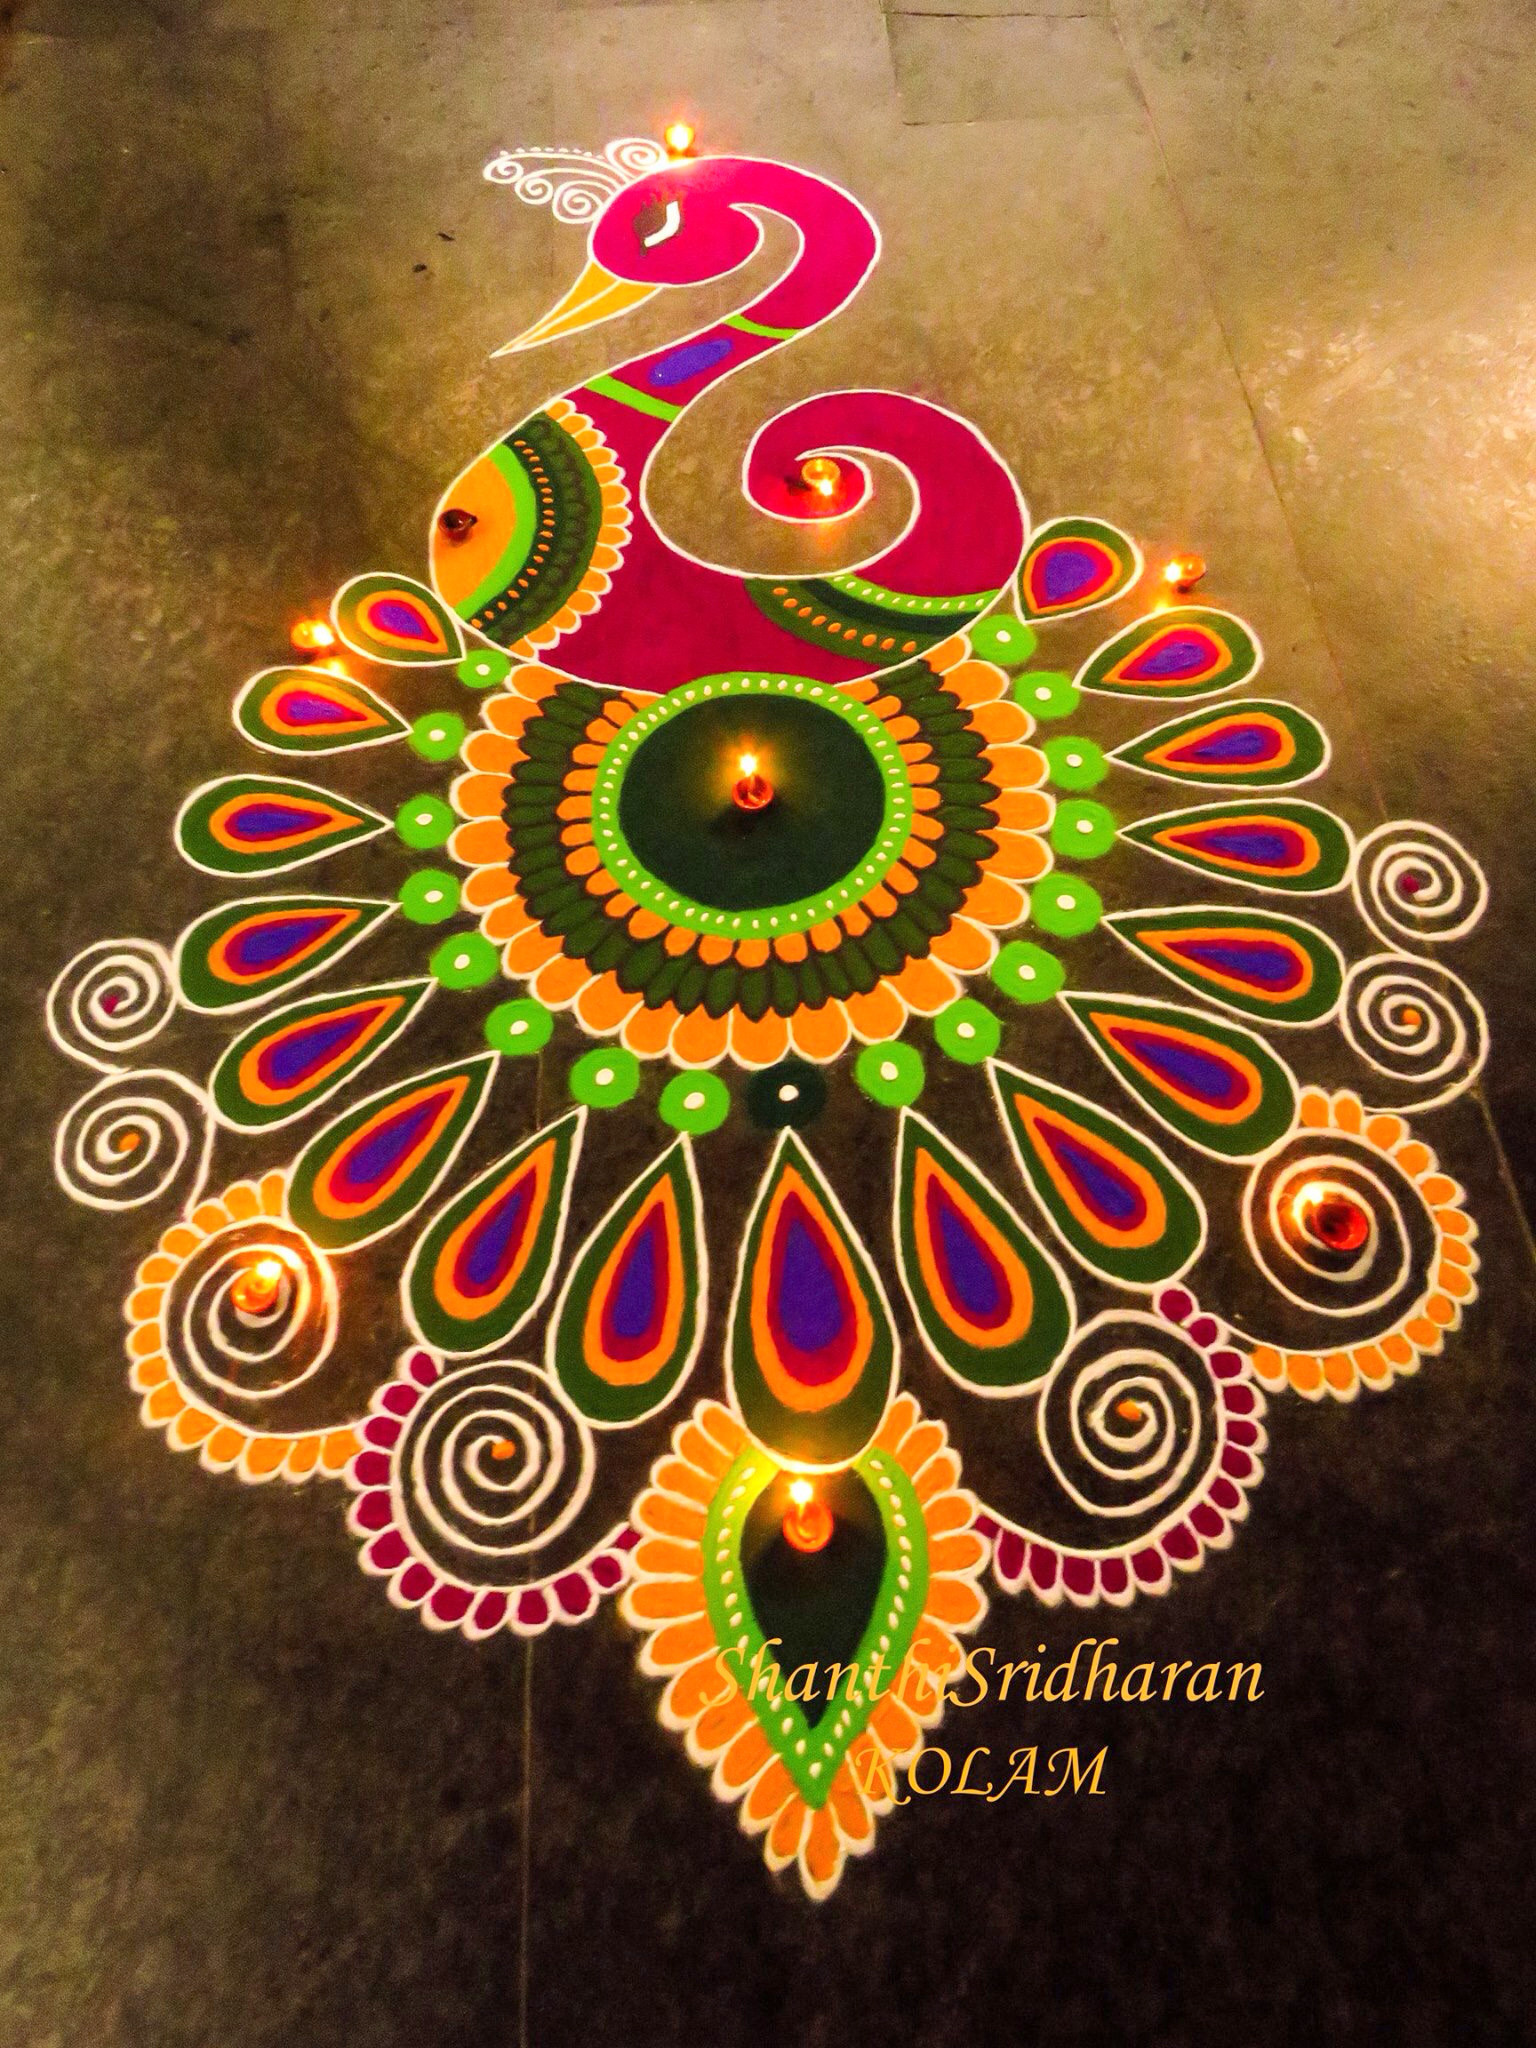 Award Winning Rangoli Designs for Diwali with Diya  for peacock rangoli designs for diwali free hand  59dqh